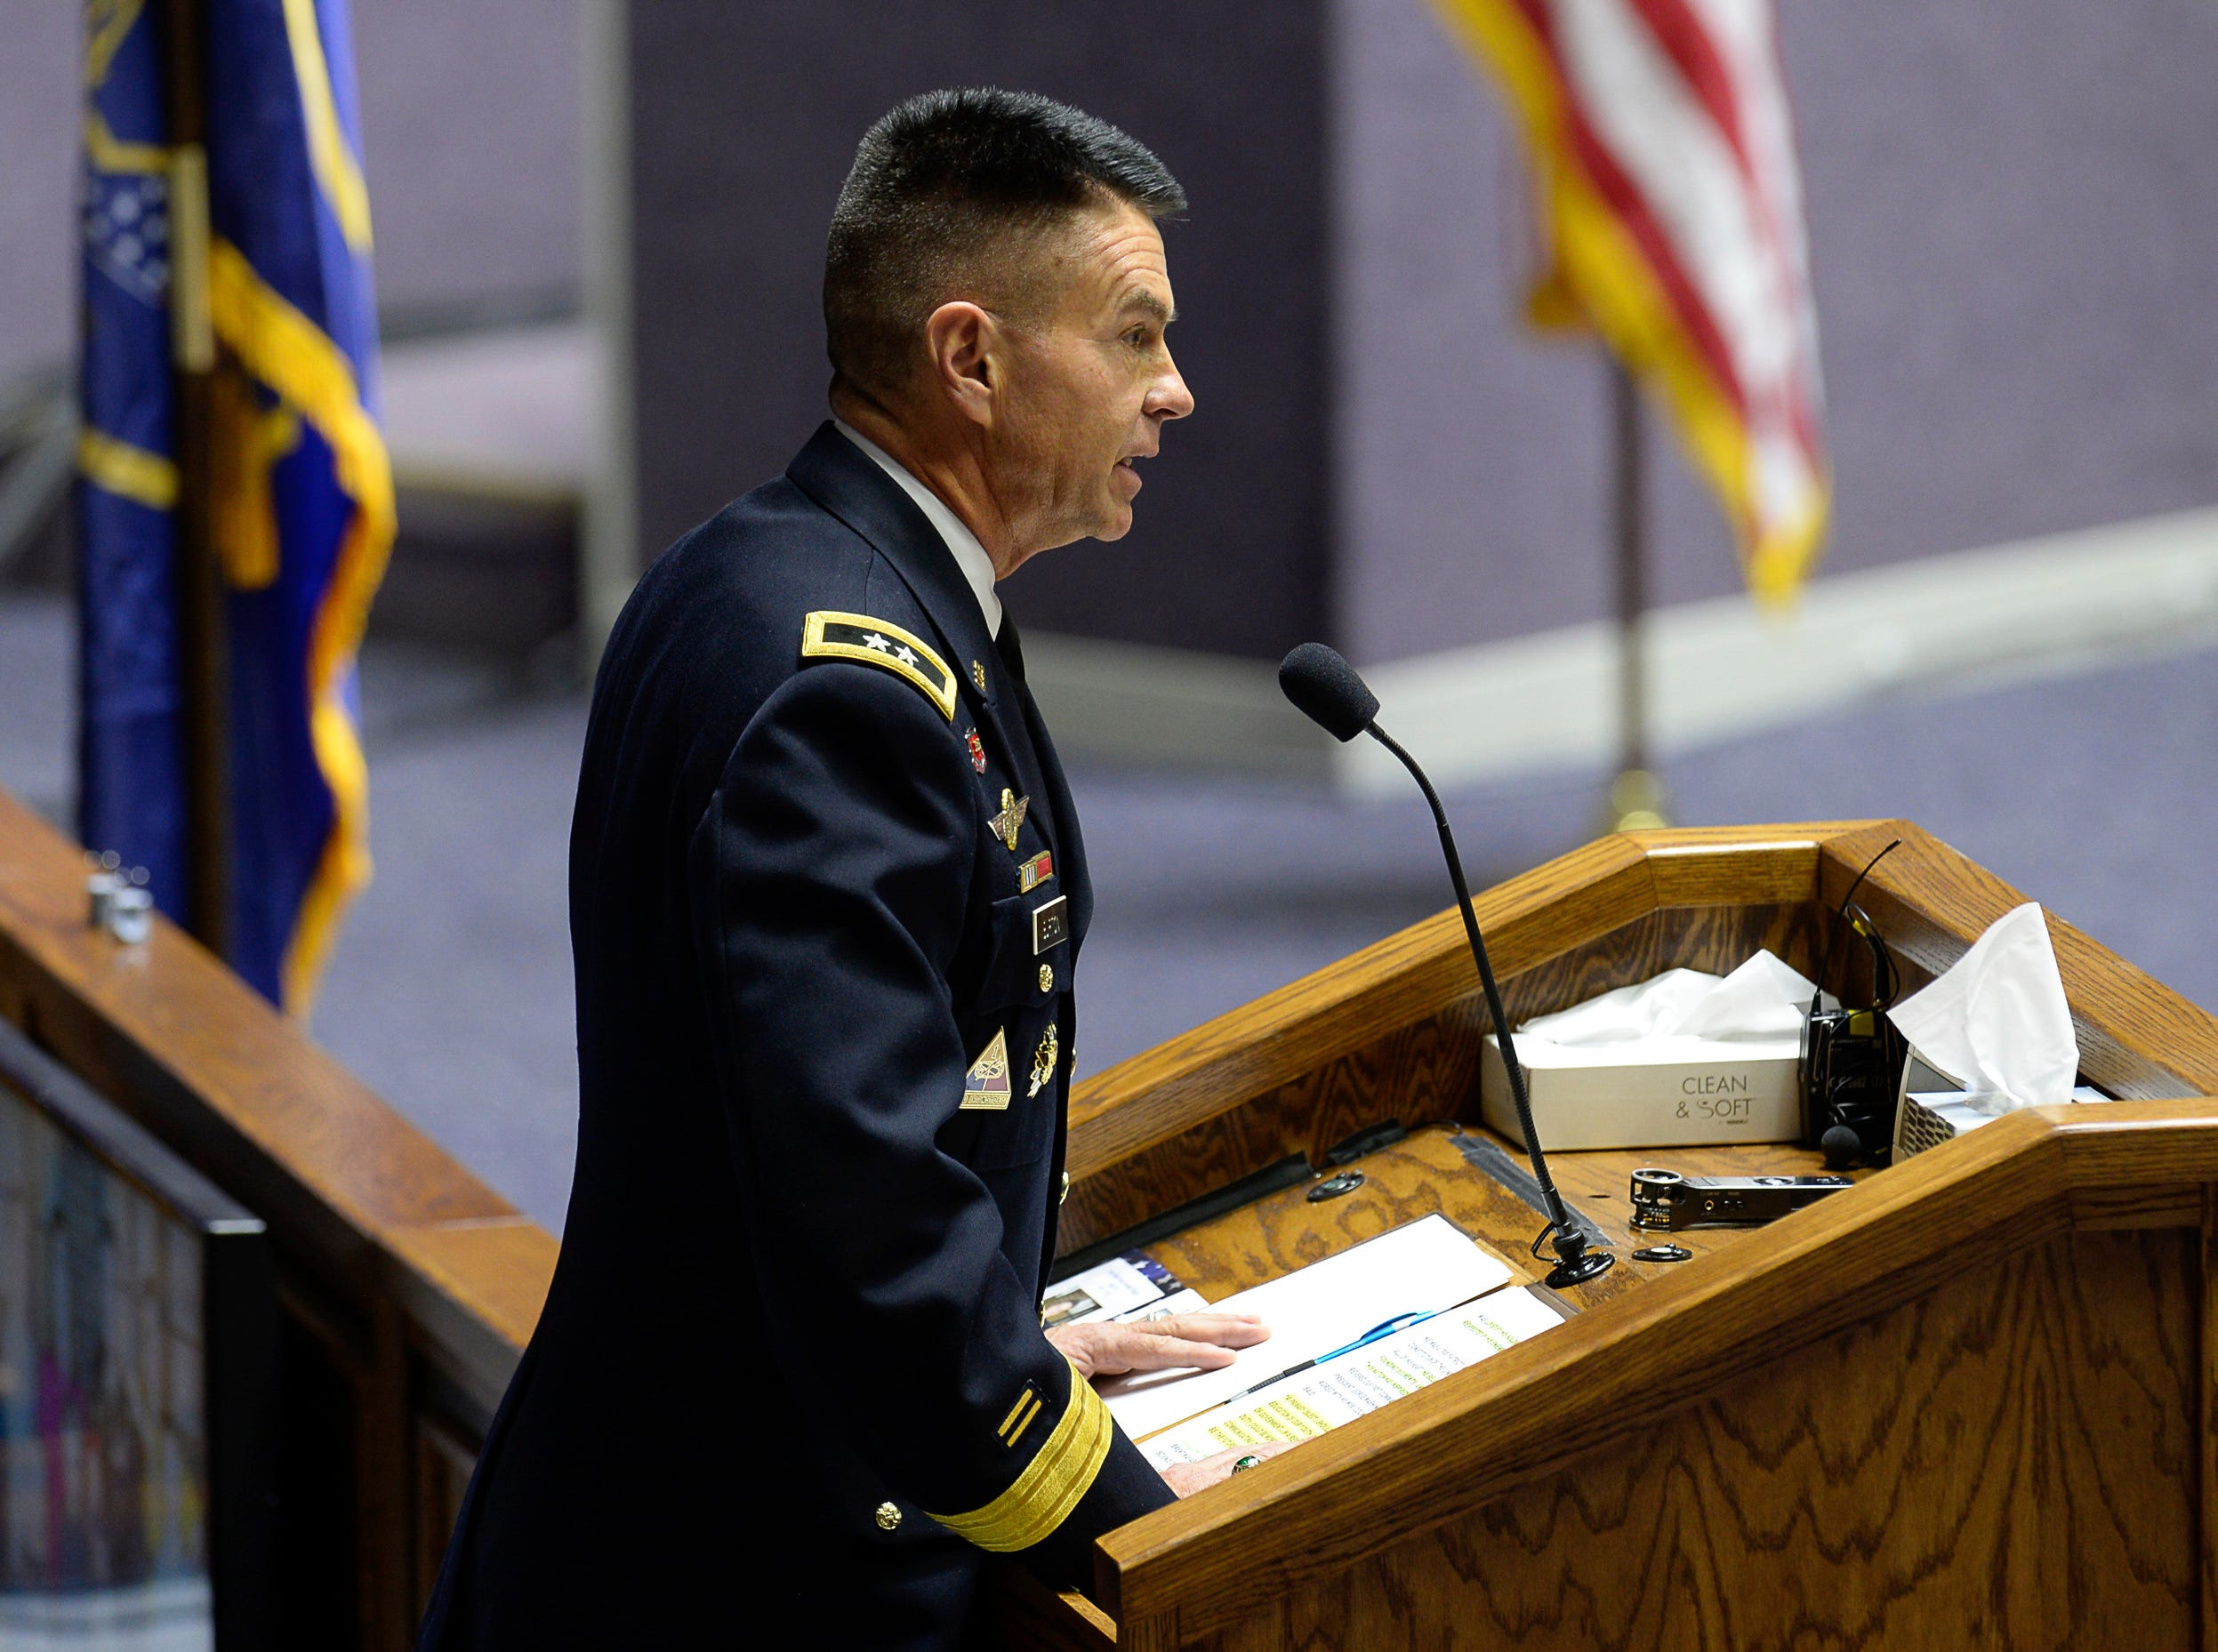 Utah Army National Guard Maj. Gen. Jefferson Burton speaks about service during Maj. Brent R. Taylor's funeral services at Weber State University's Dee Event Center in Ogden, Utah on Saturday, Nov. 17, 2018.